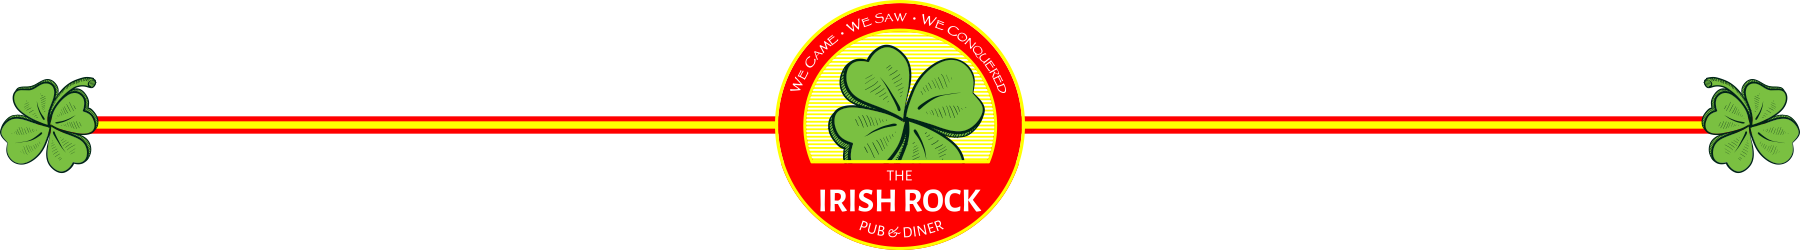 The Irish Rock